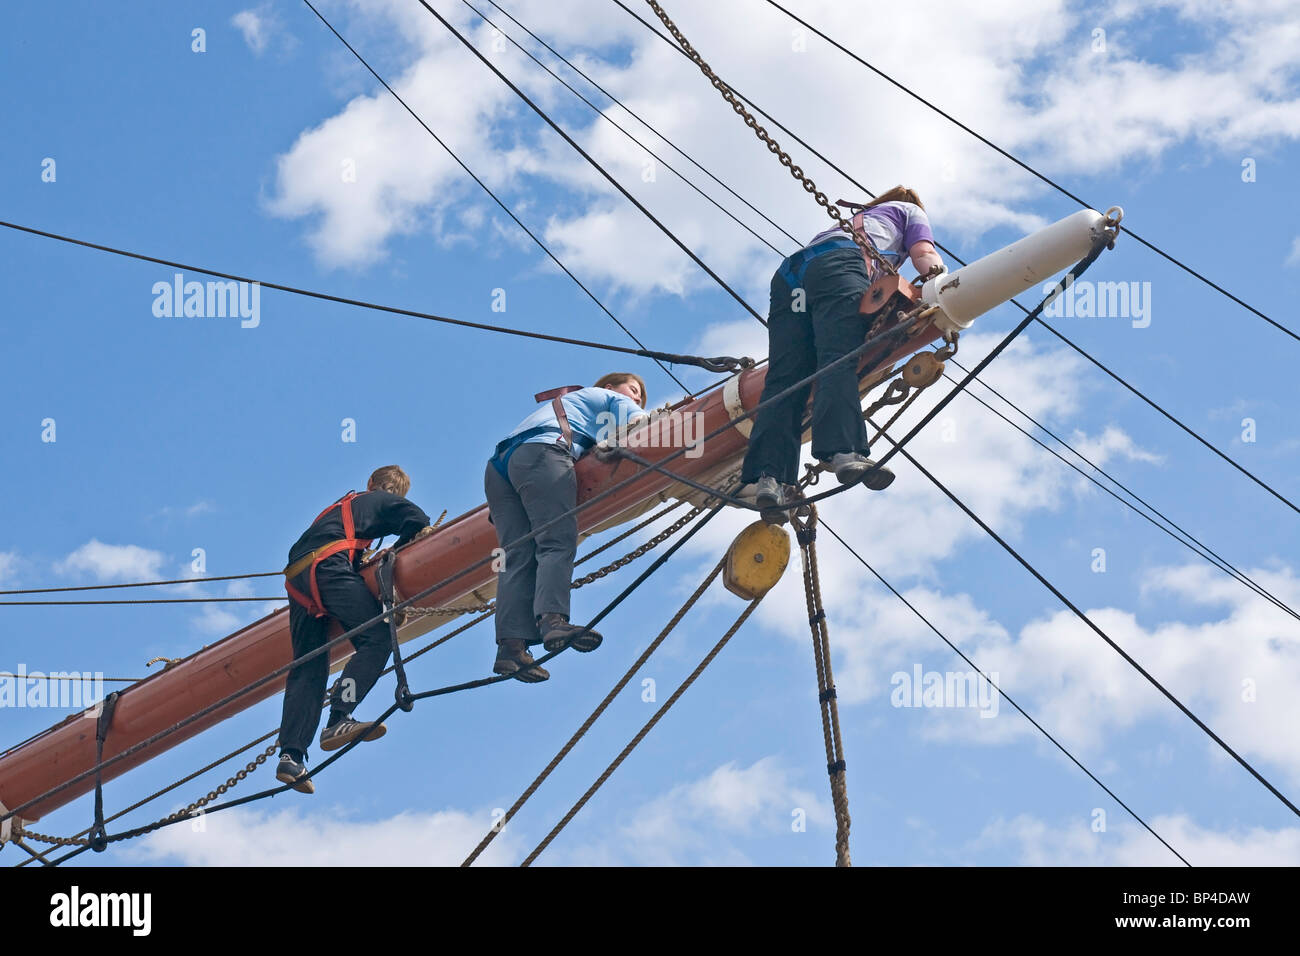 Members of the crew of a square rigged sailing ship working on the middle yard (spar) of one of the masts. - Stock Image